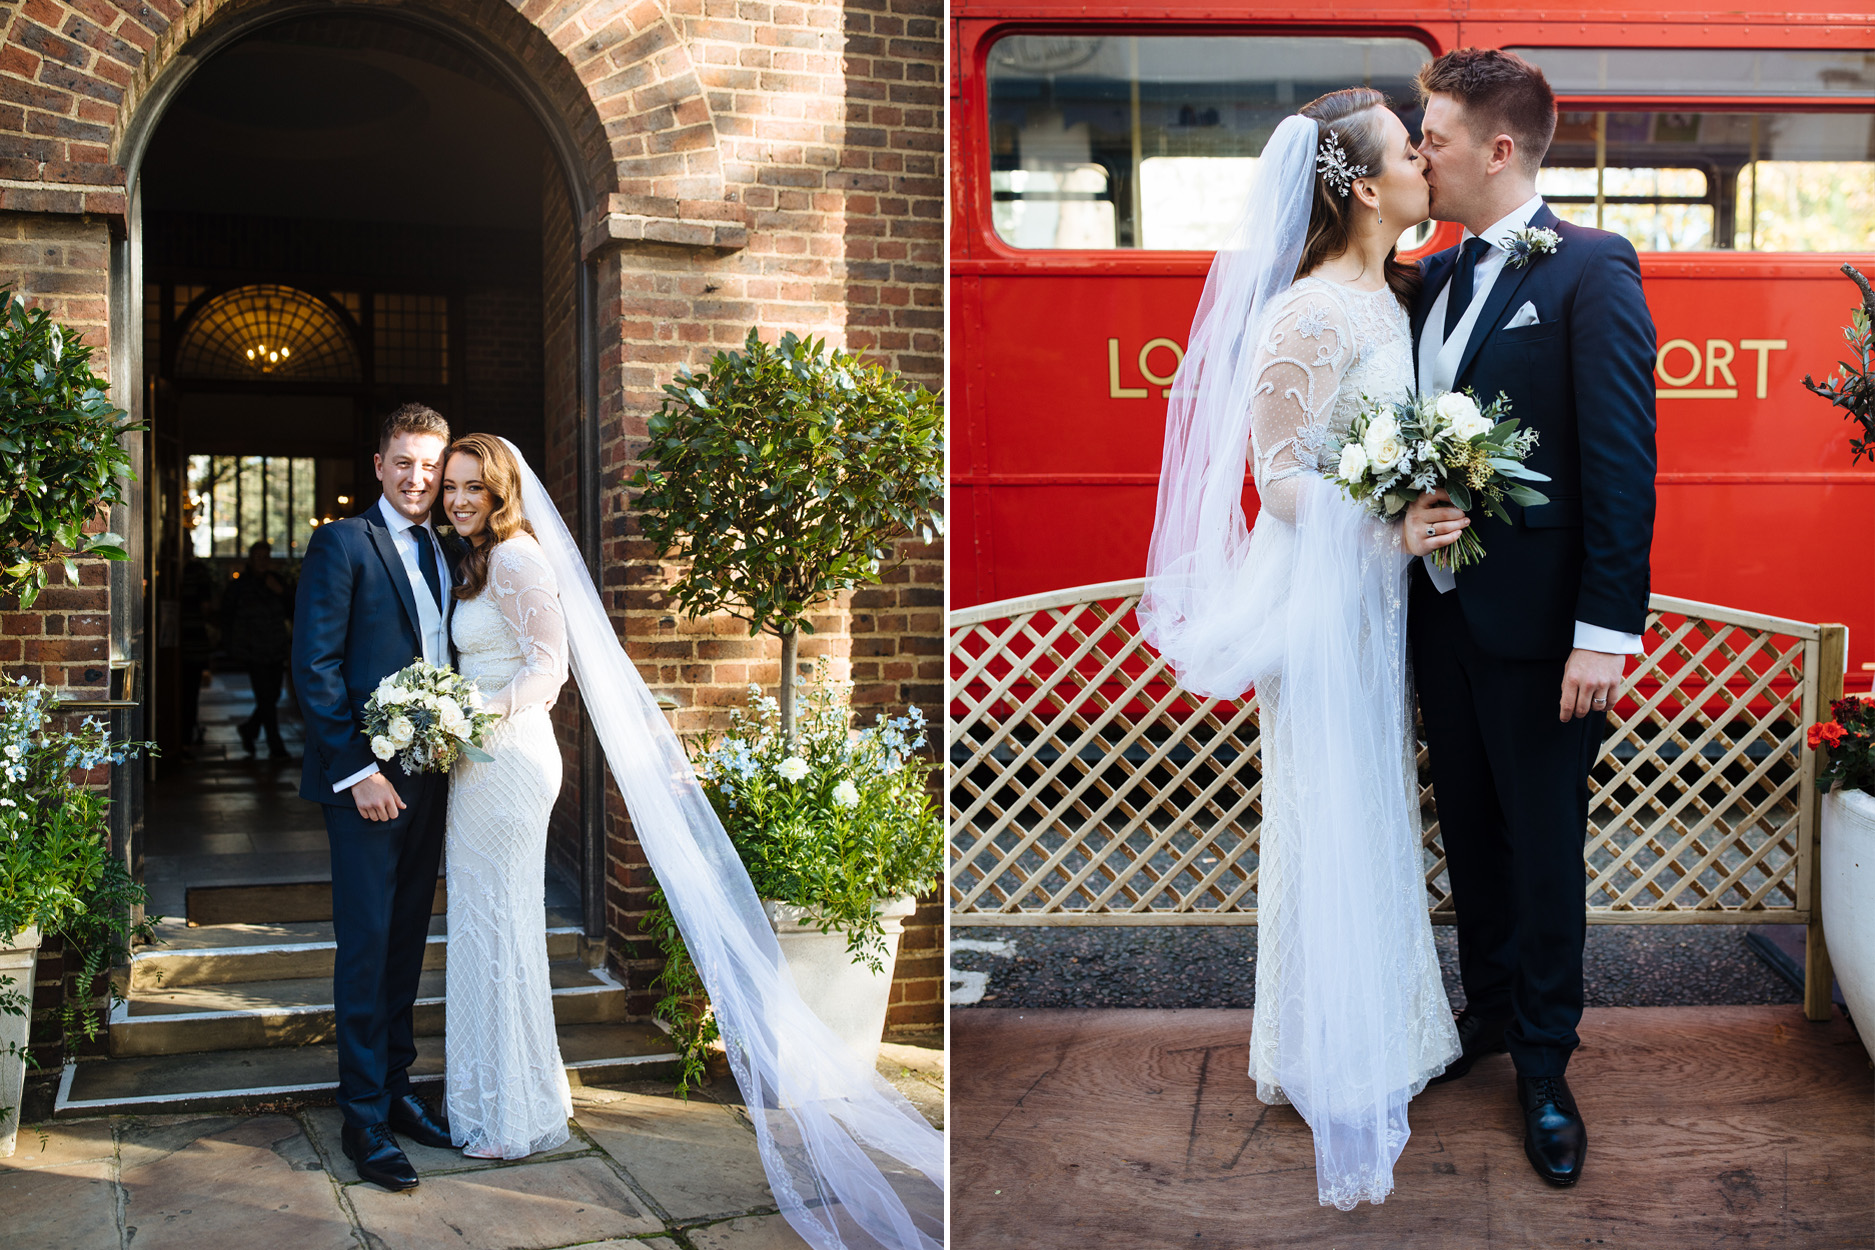 bride and groom wedding ceremony at Chelsea church